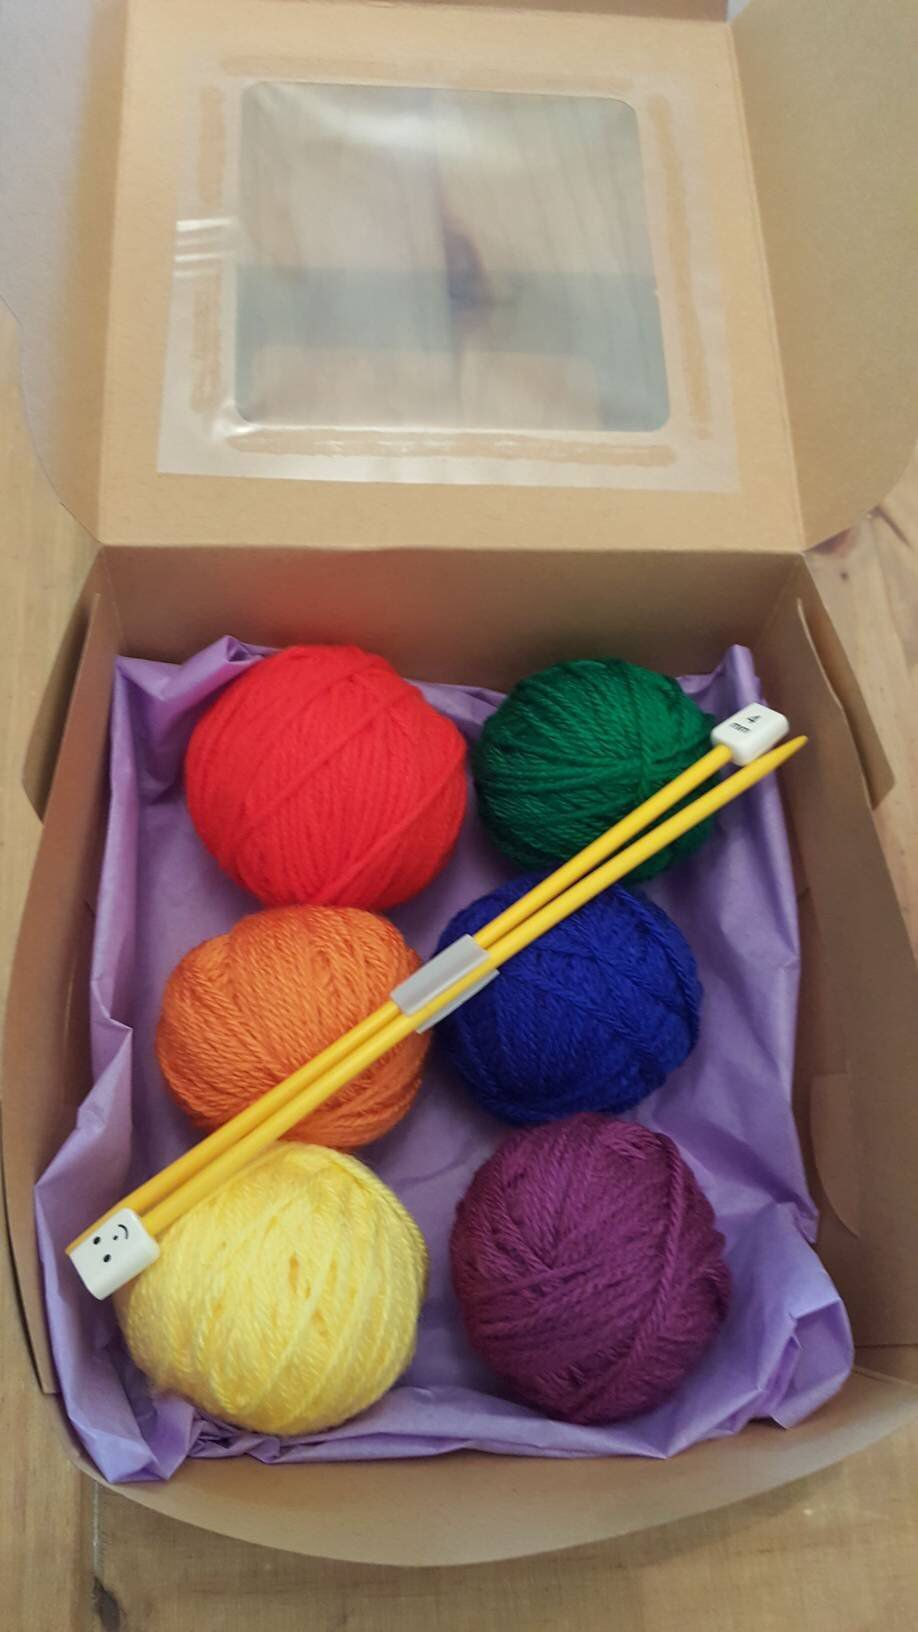 CHILDREN/'S KNITTING KIT WITH KNITTING NEEDLES AND WOOL